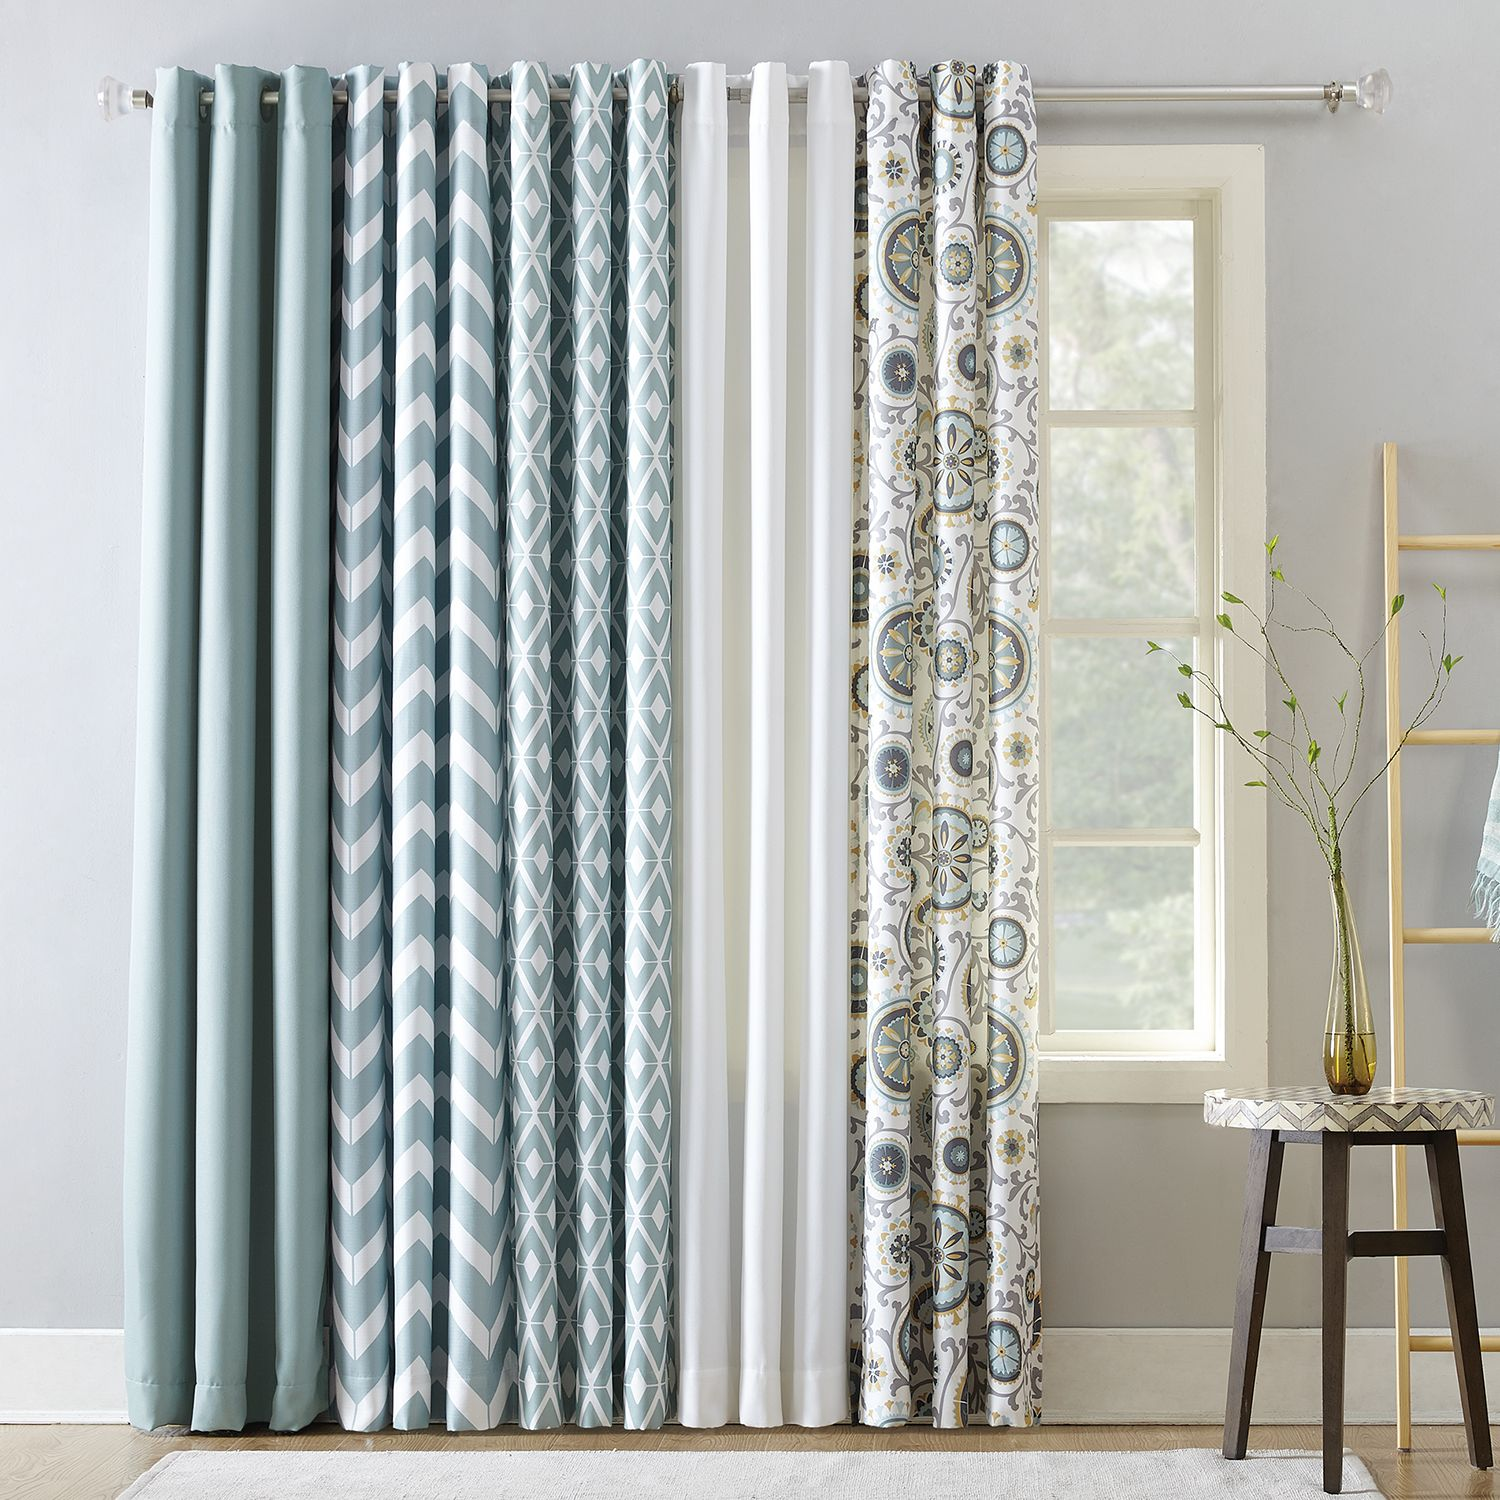 The Big One® 2 Pack Aqua Window Curtain Collection